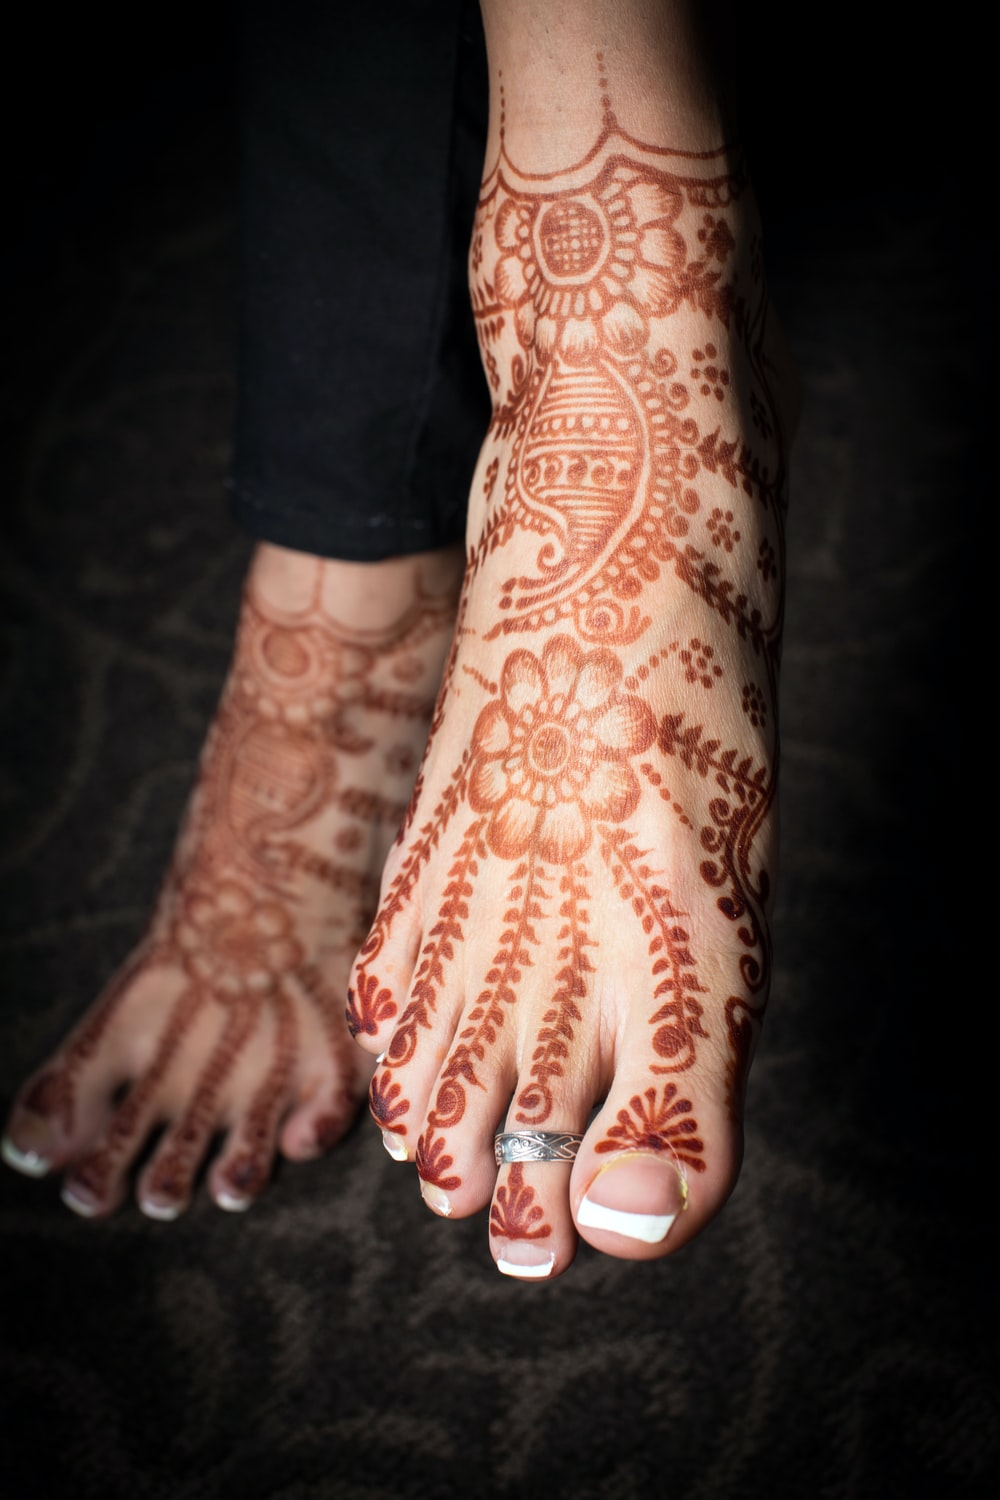 person with red and white floral tattoo on left hand